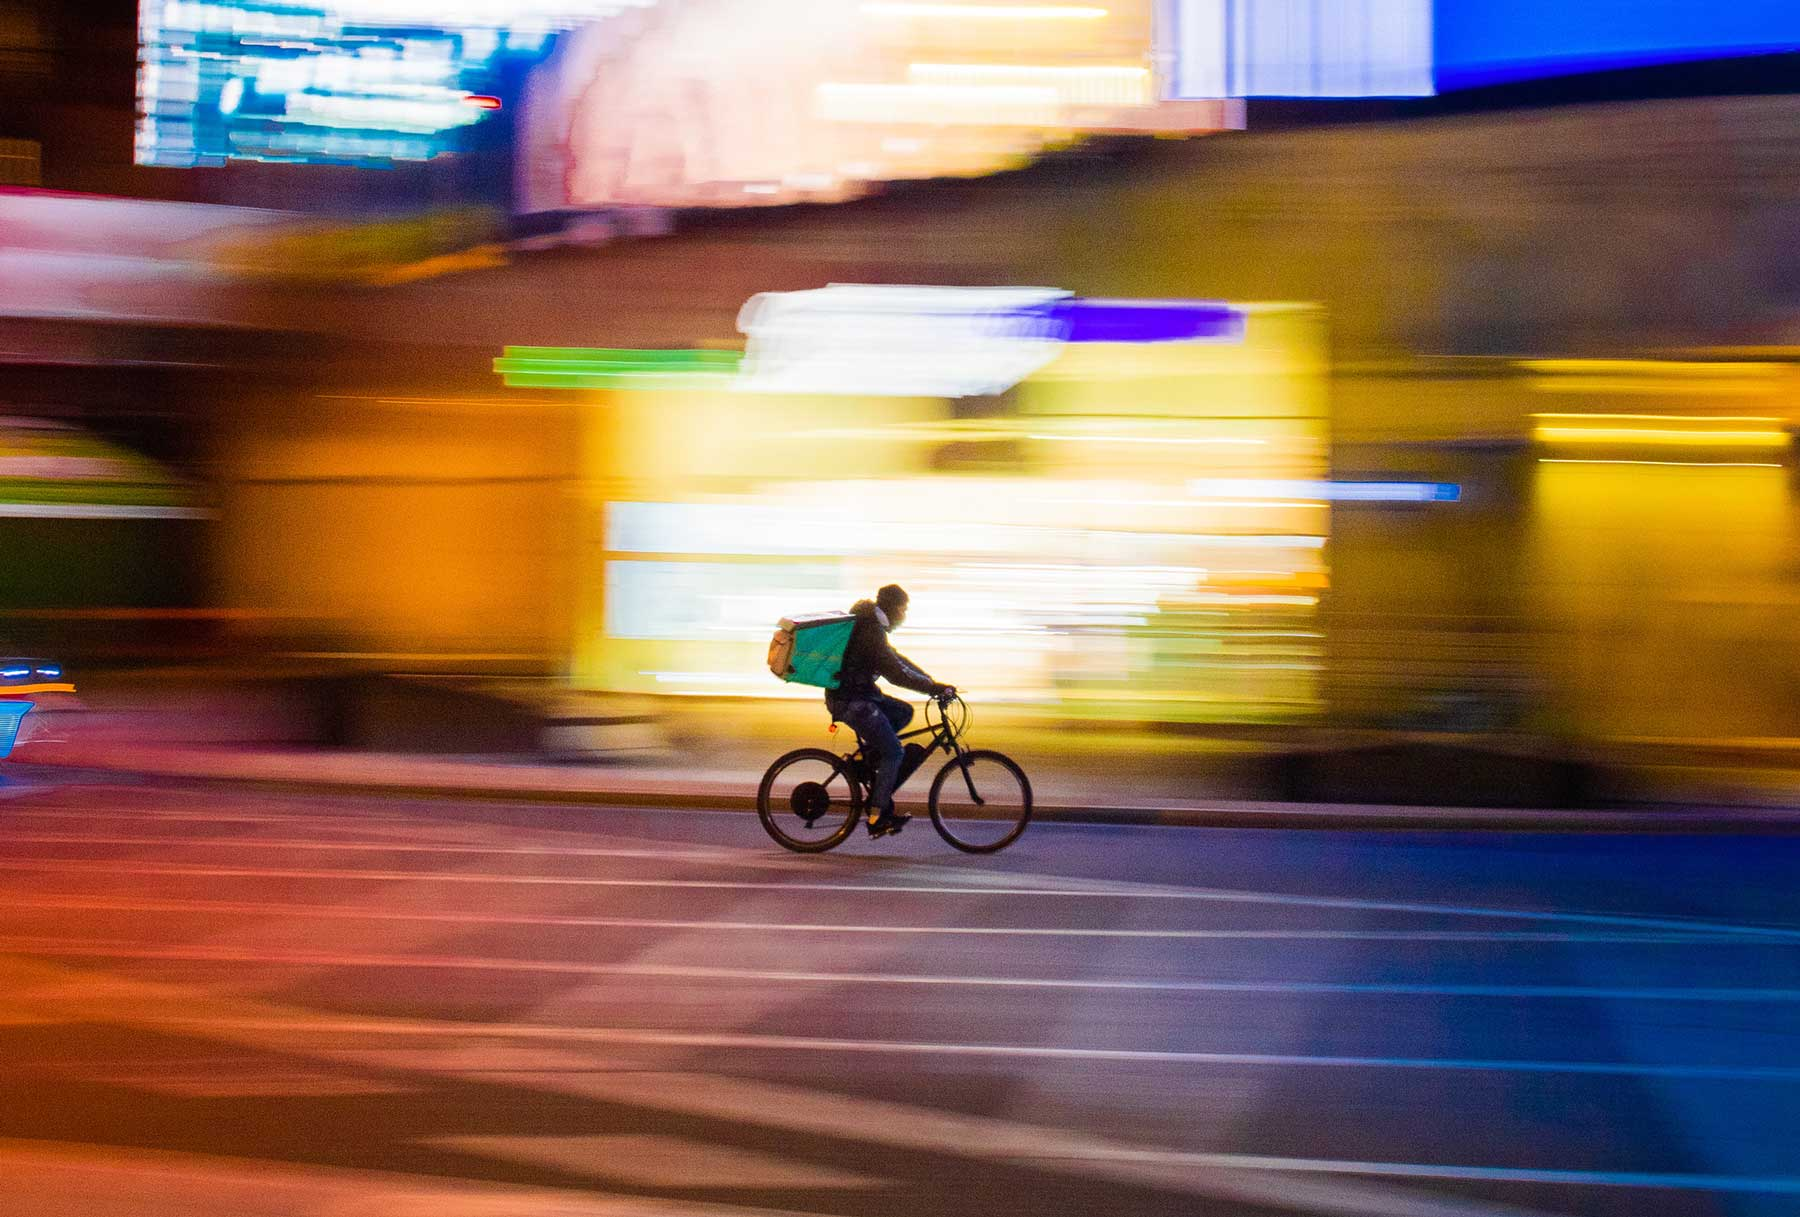 Quick Commerce Rider on a bike with colorful background